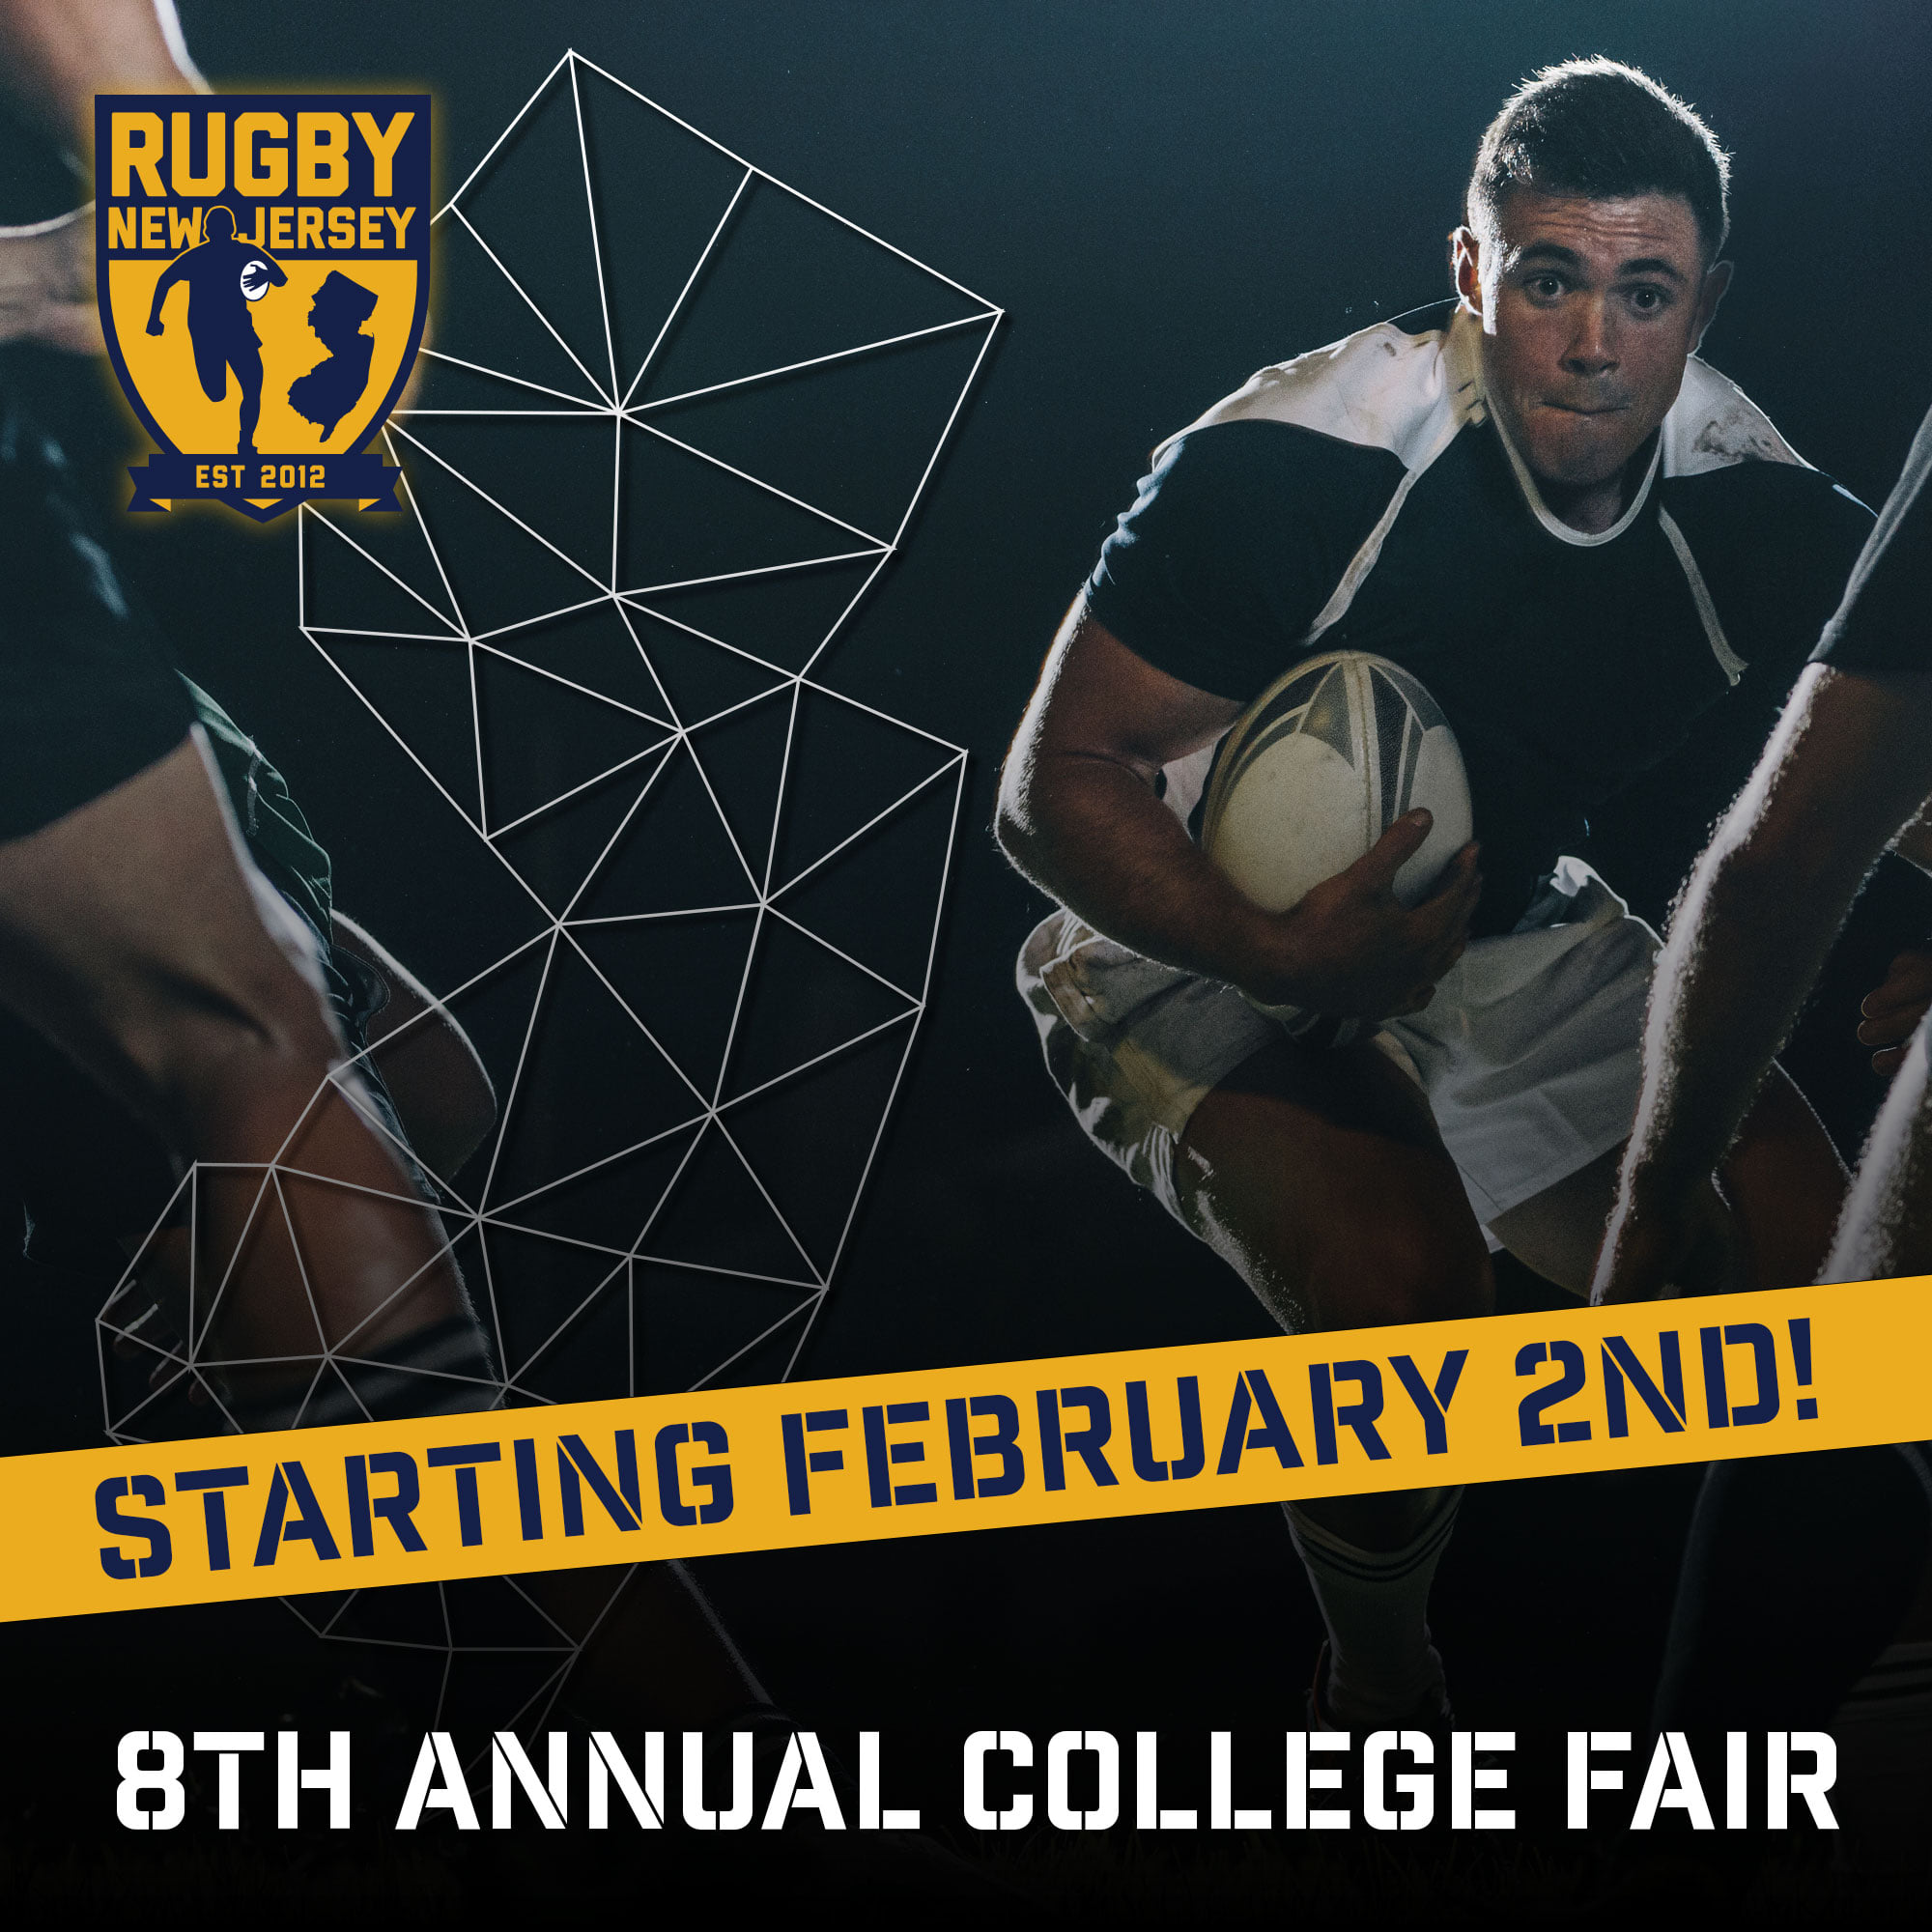 Rugby New Jersey's Eighth College Fair goes Virtual